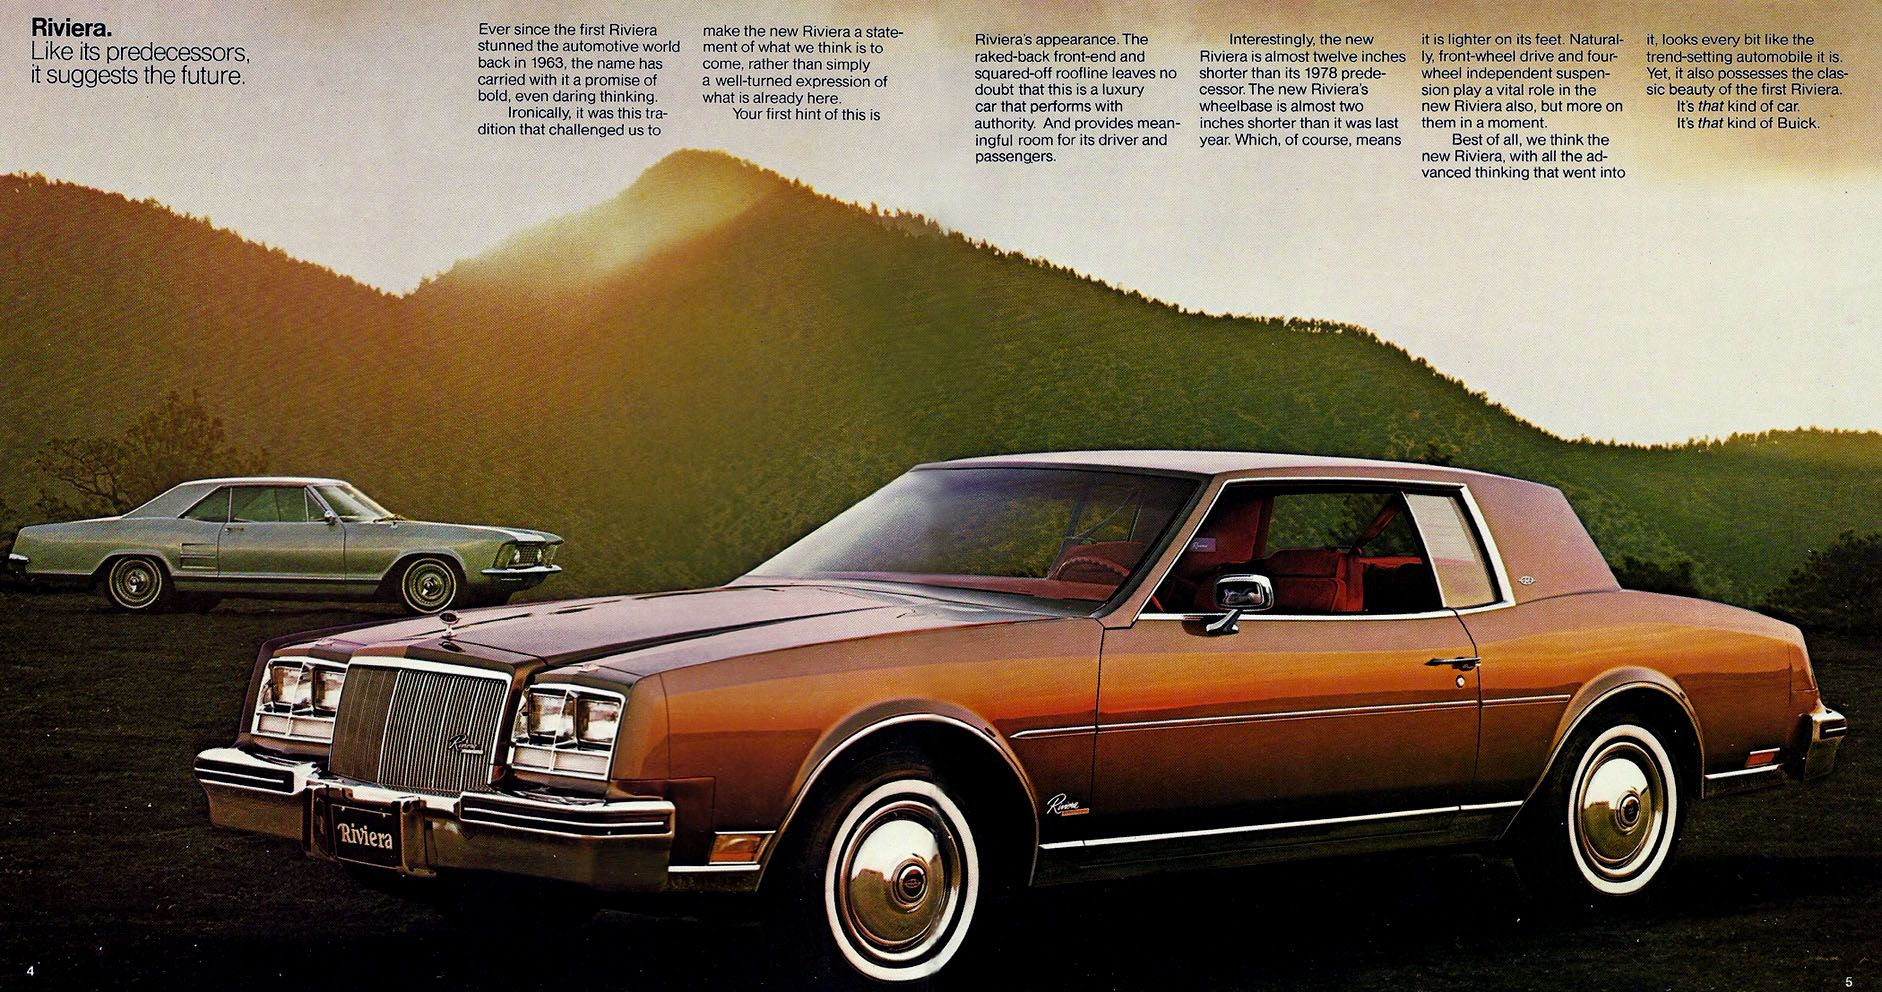 1979 Buick Riviera S Classic Vintage Car Advertisement Ad J28 Car of Year